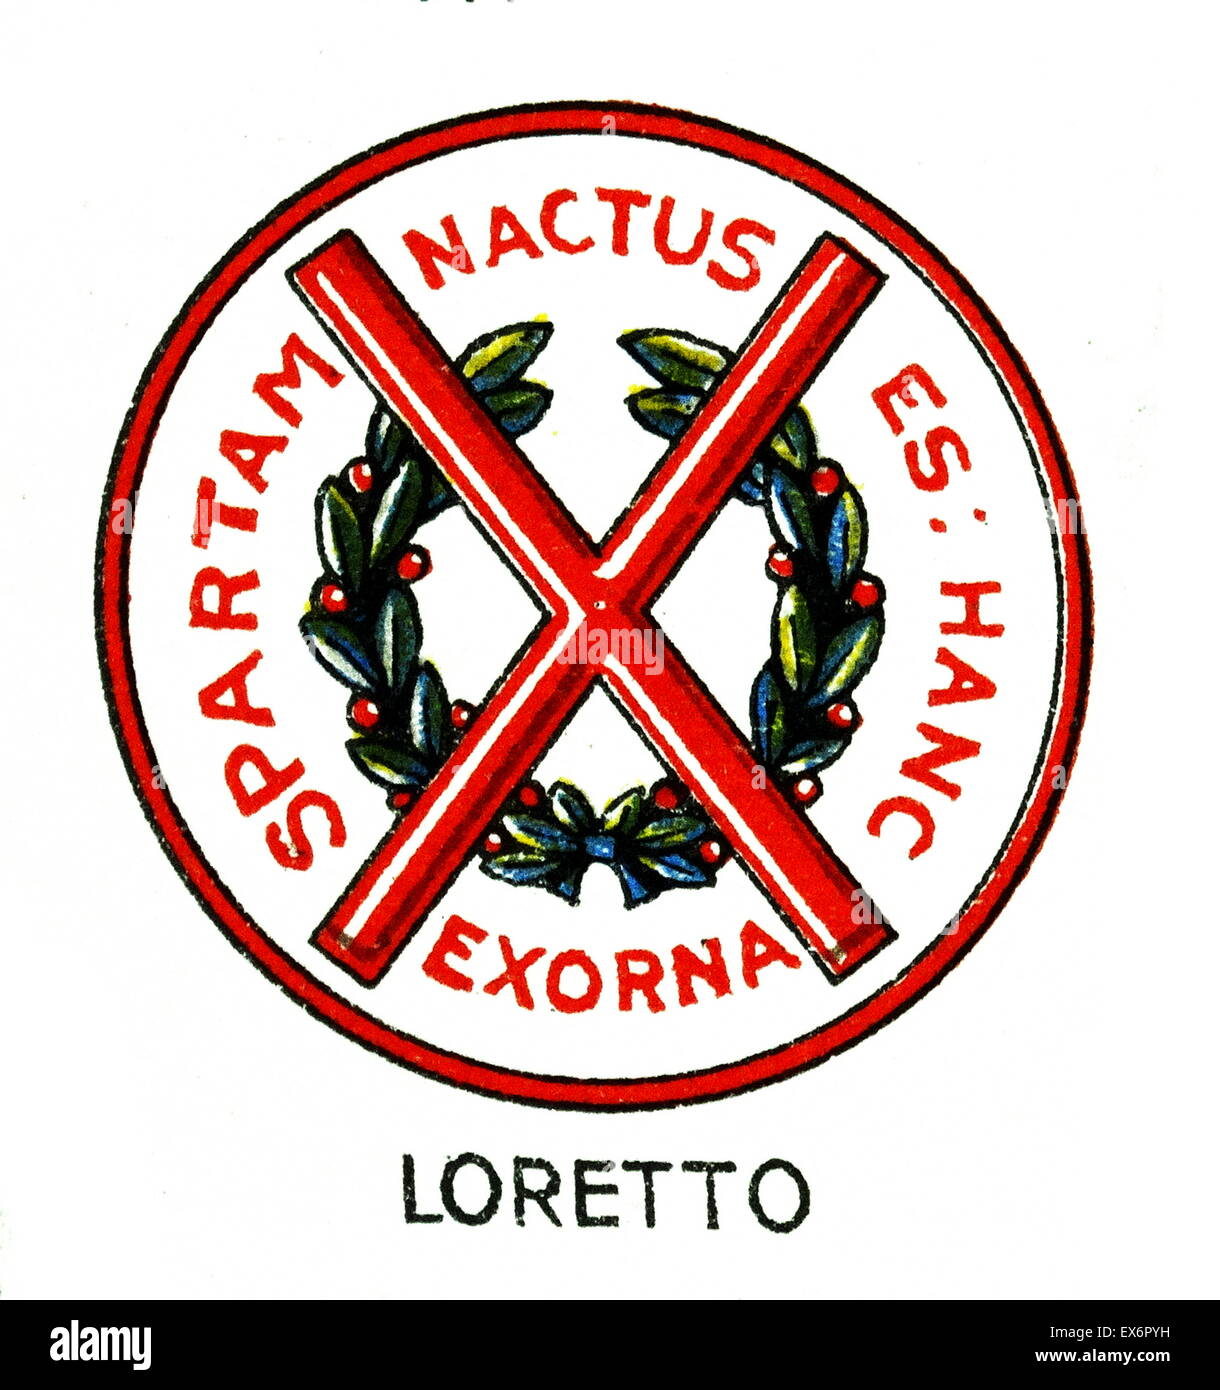 Emblem of Loretto School, Musselburgh, East Lothian, Scotland. Loretto School is an independent boarding and day - Stock Image